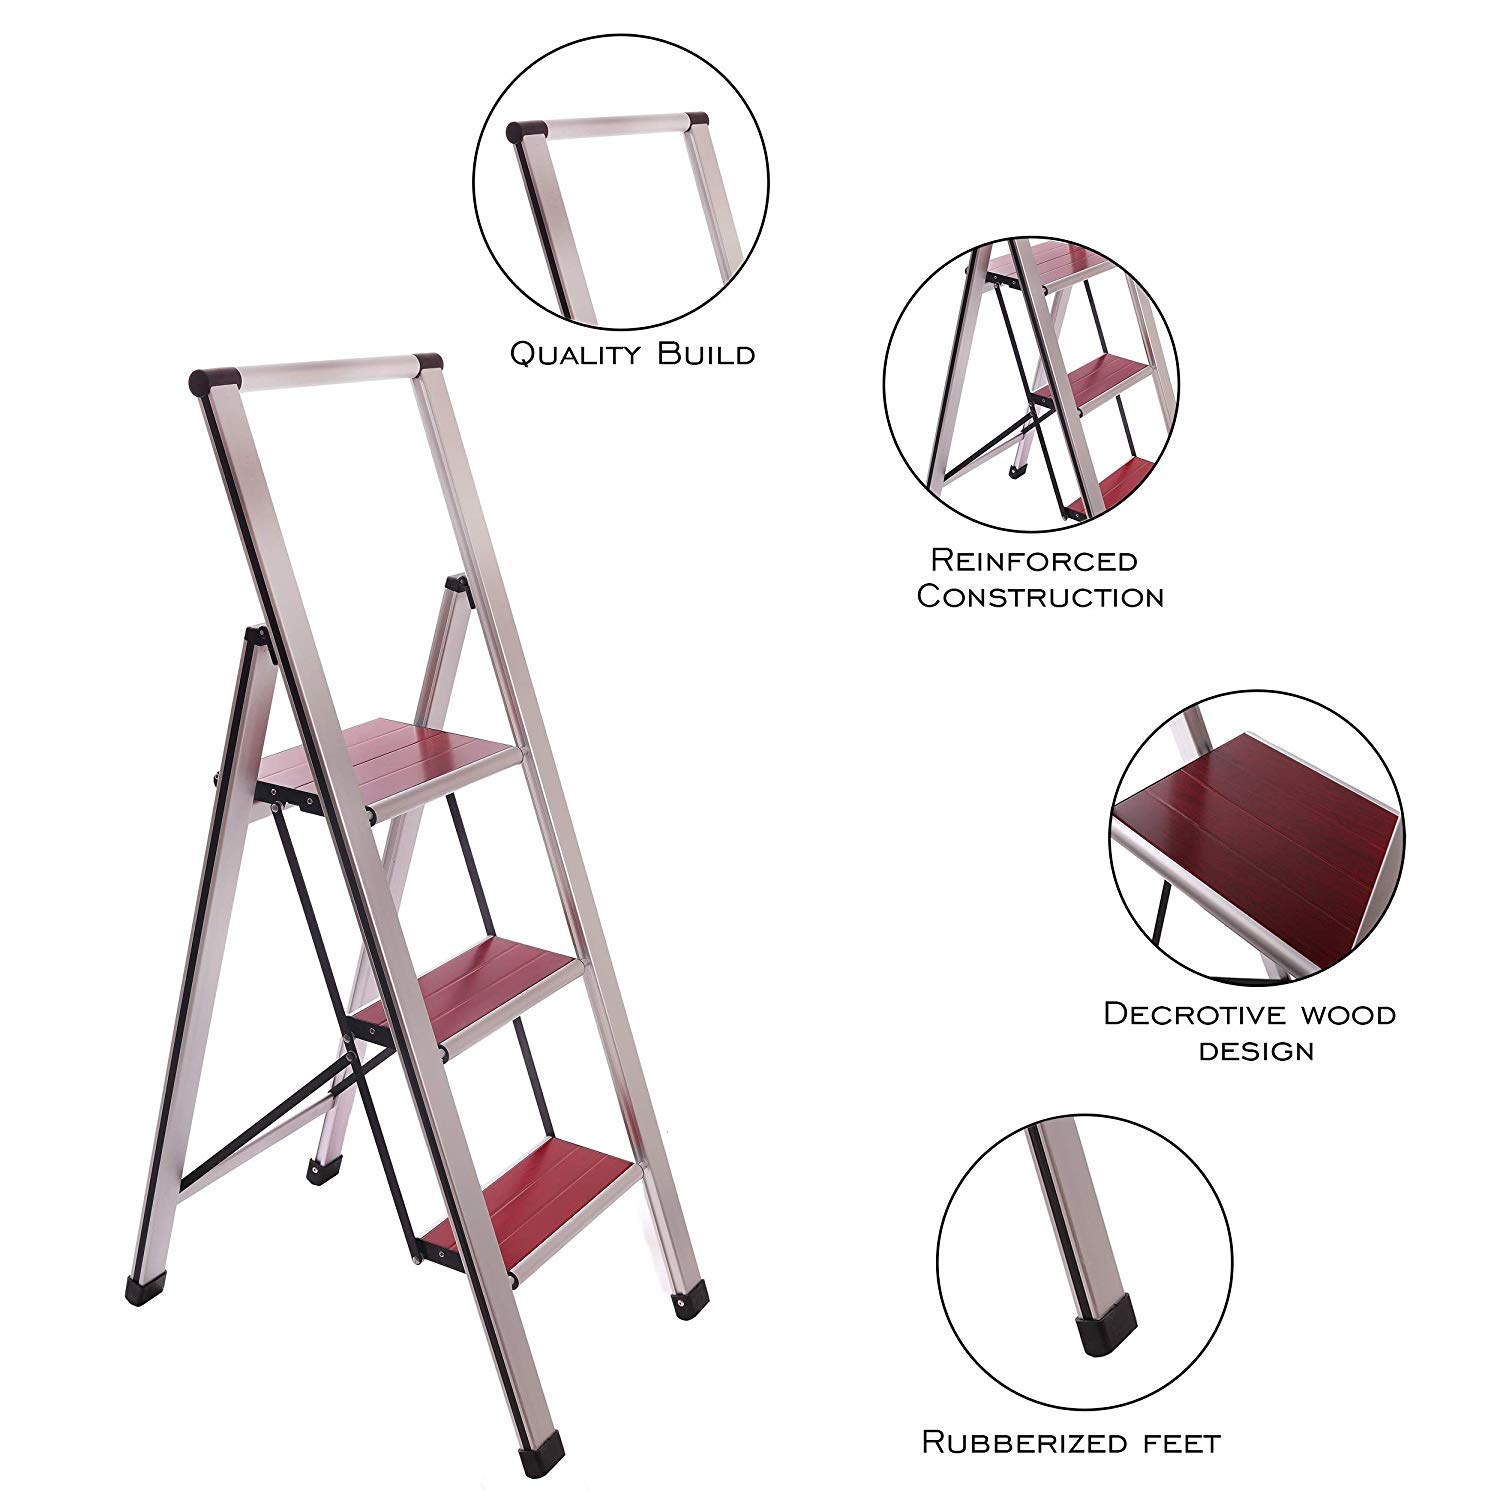 Aluminum Folding 3 Step Ladder Stool for Adults, Anti Slip, Sturdy, Lightweight and Slim Design, Heavy Duty Stepping Stools, Silver/Mahogany by Sorfey